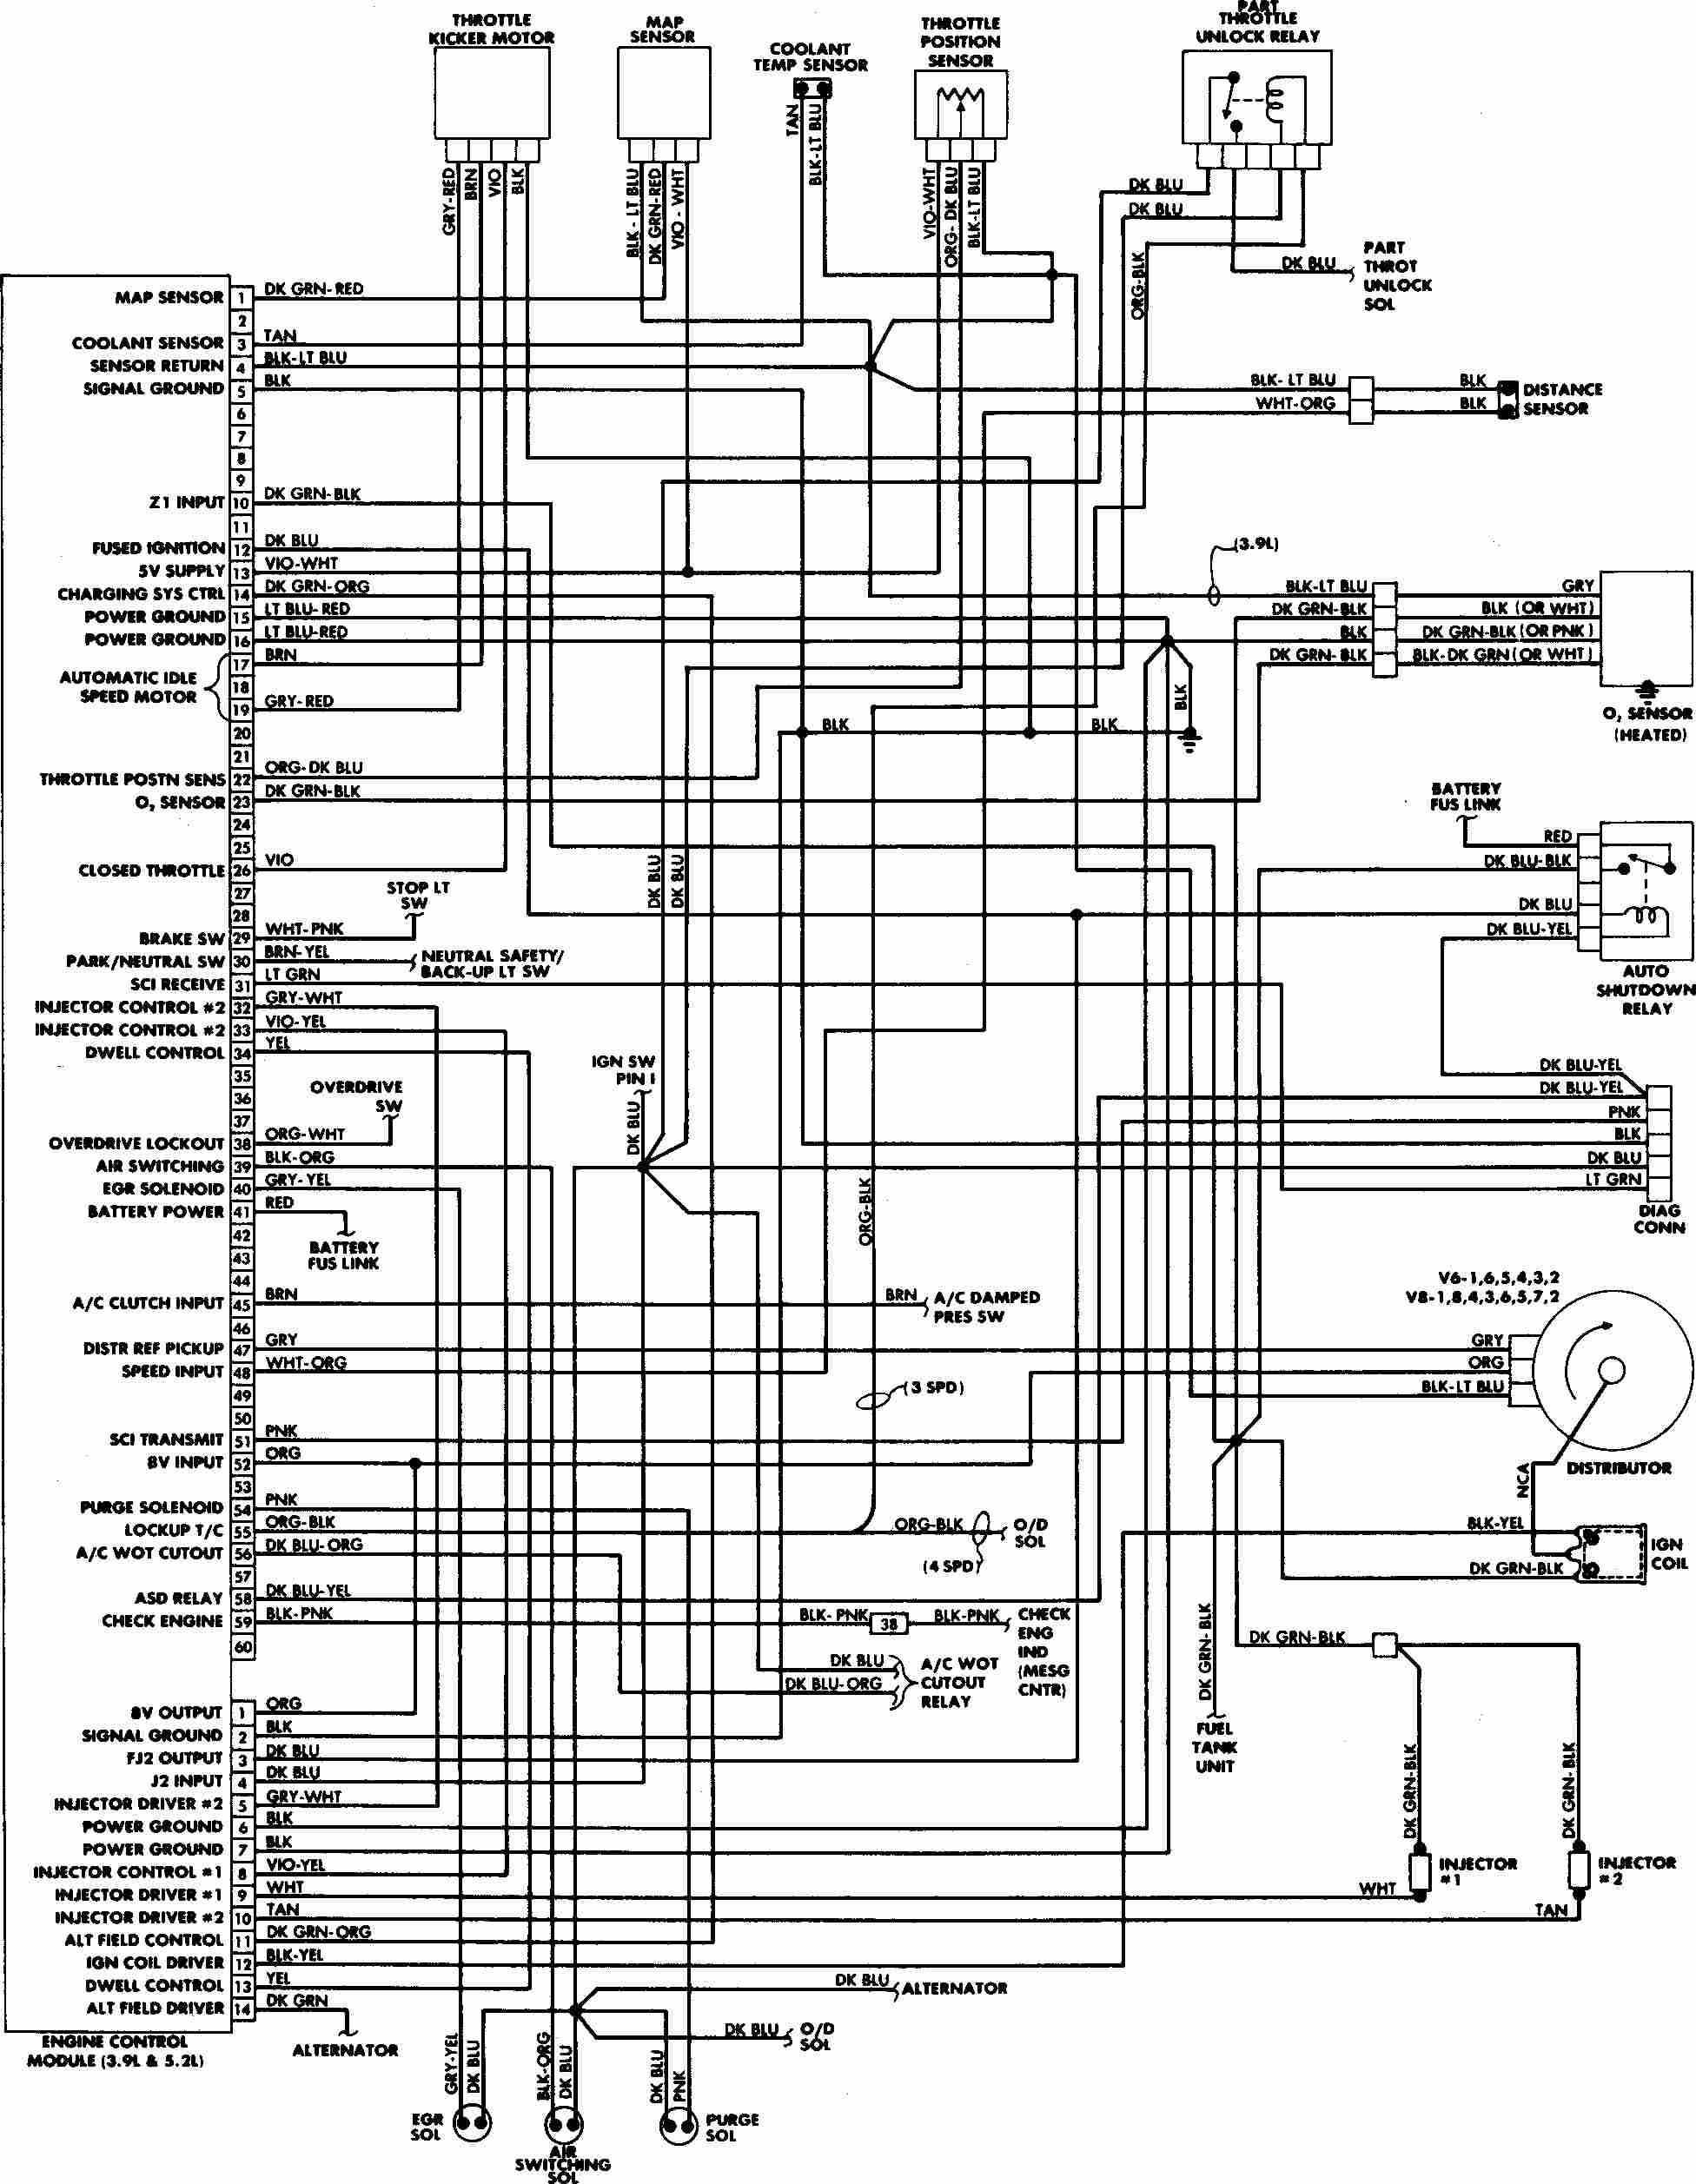 awesome 1jz wiring harness diagram adornment